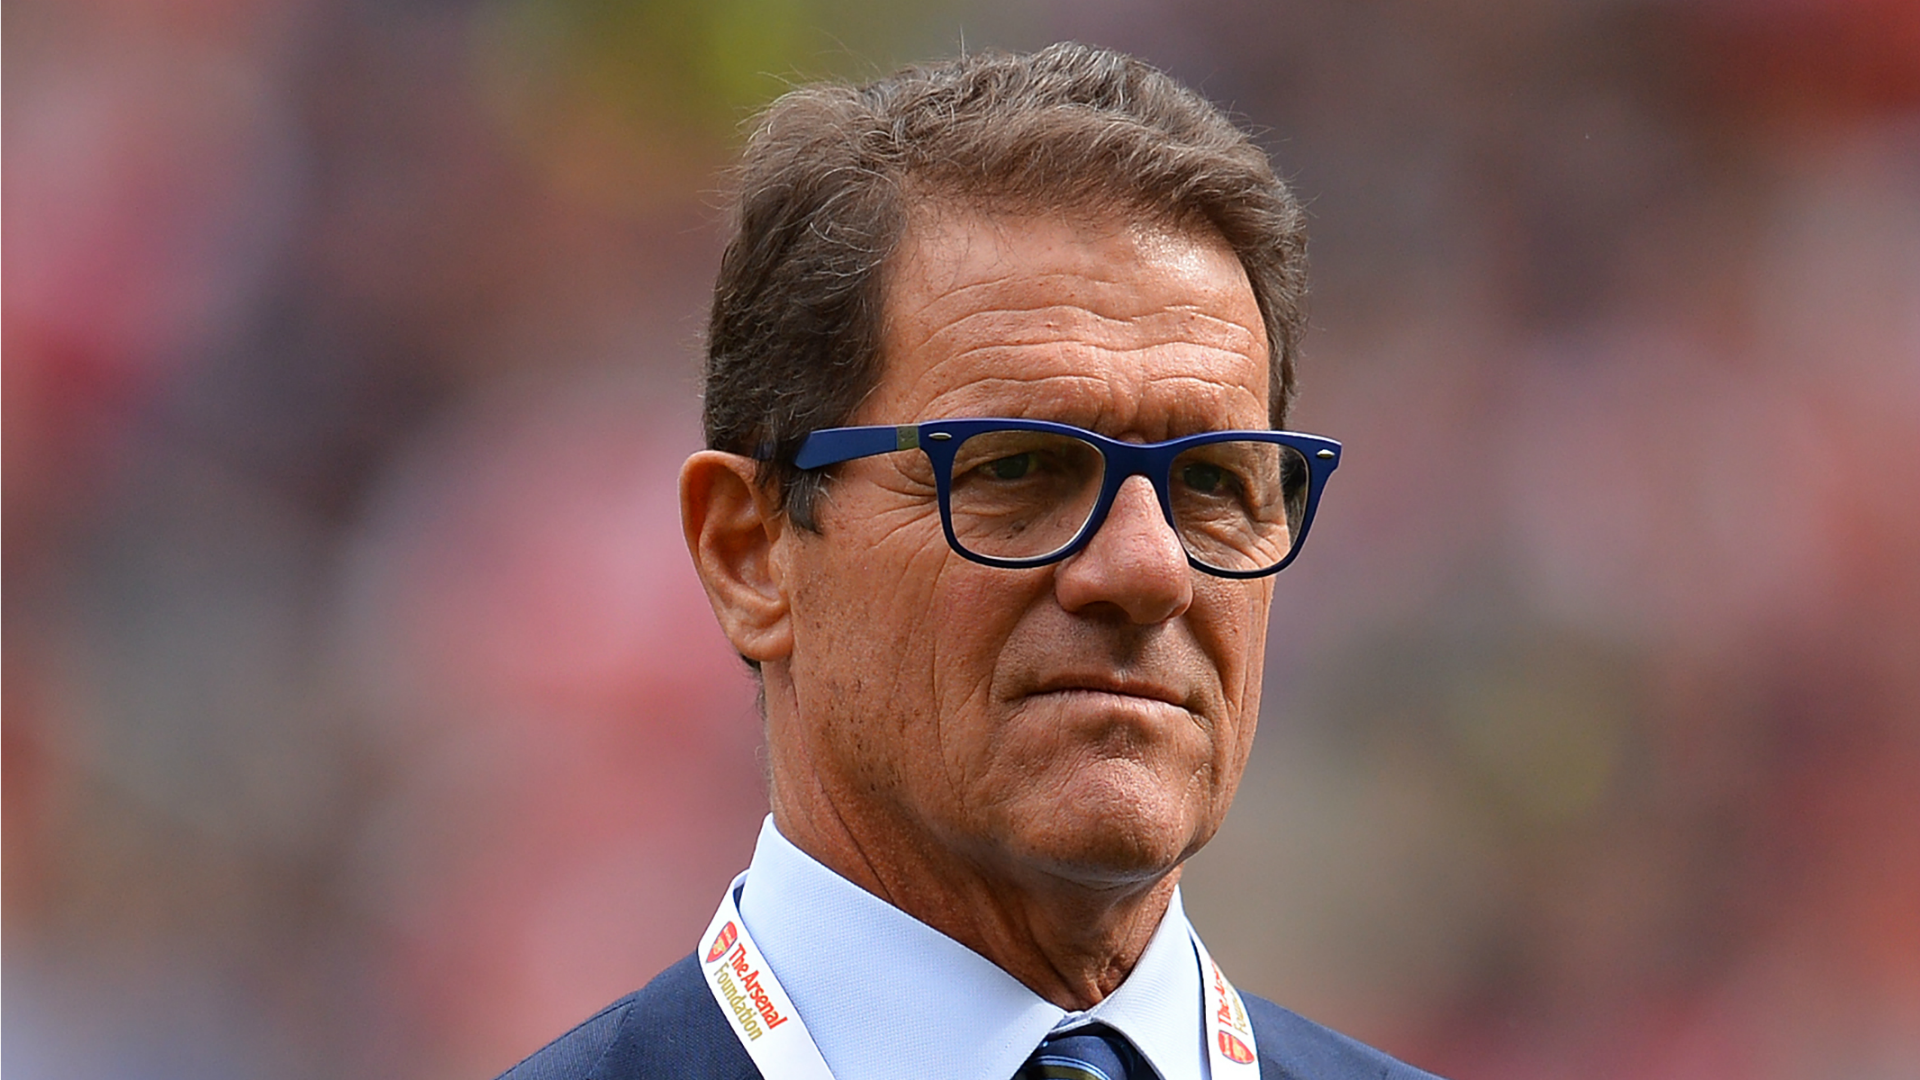 Fabio Capello admitted mistakes at the World Cup, but did not take the blame for the failure 77